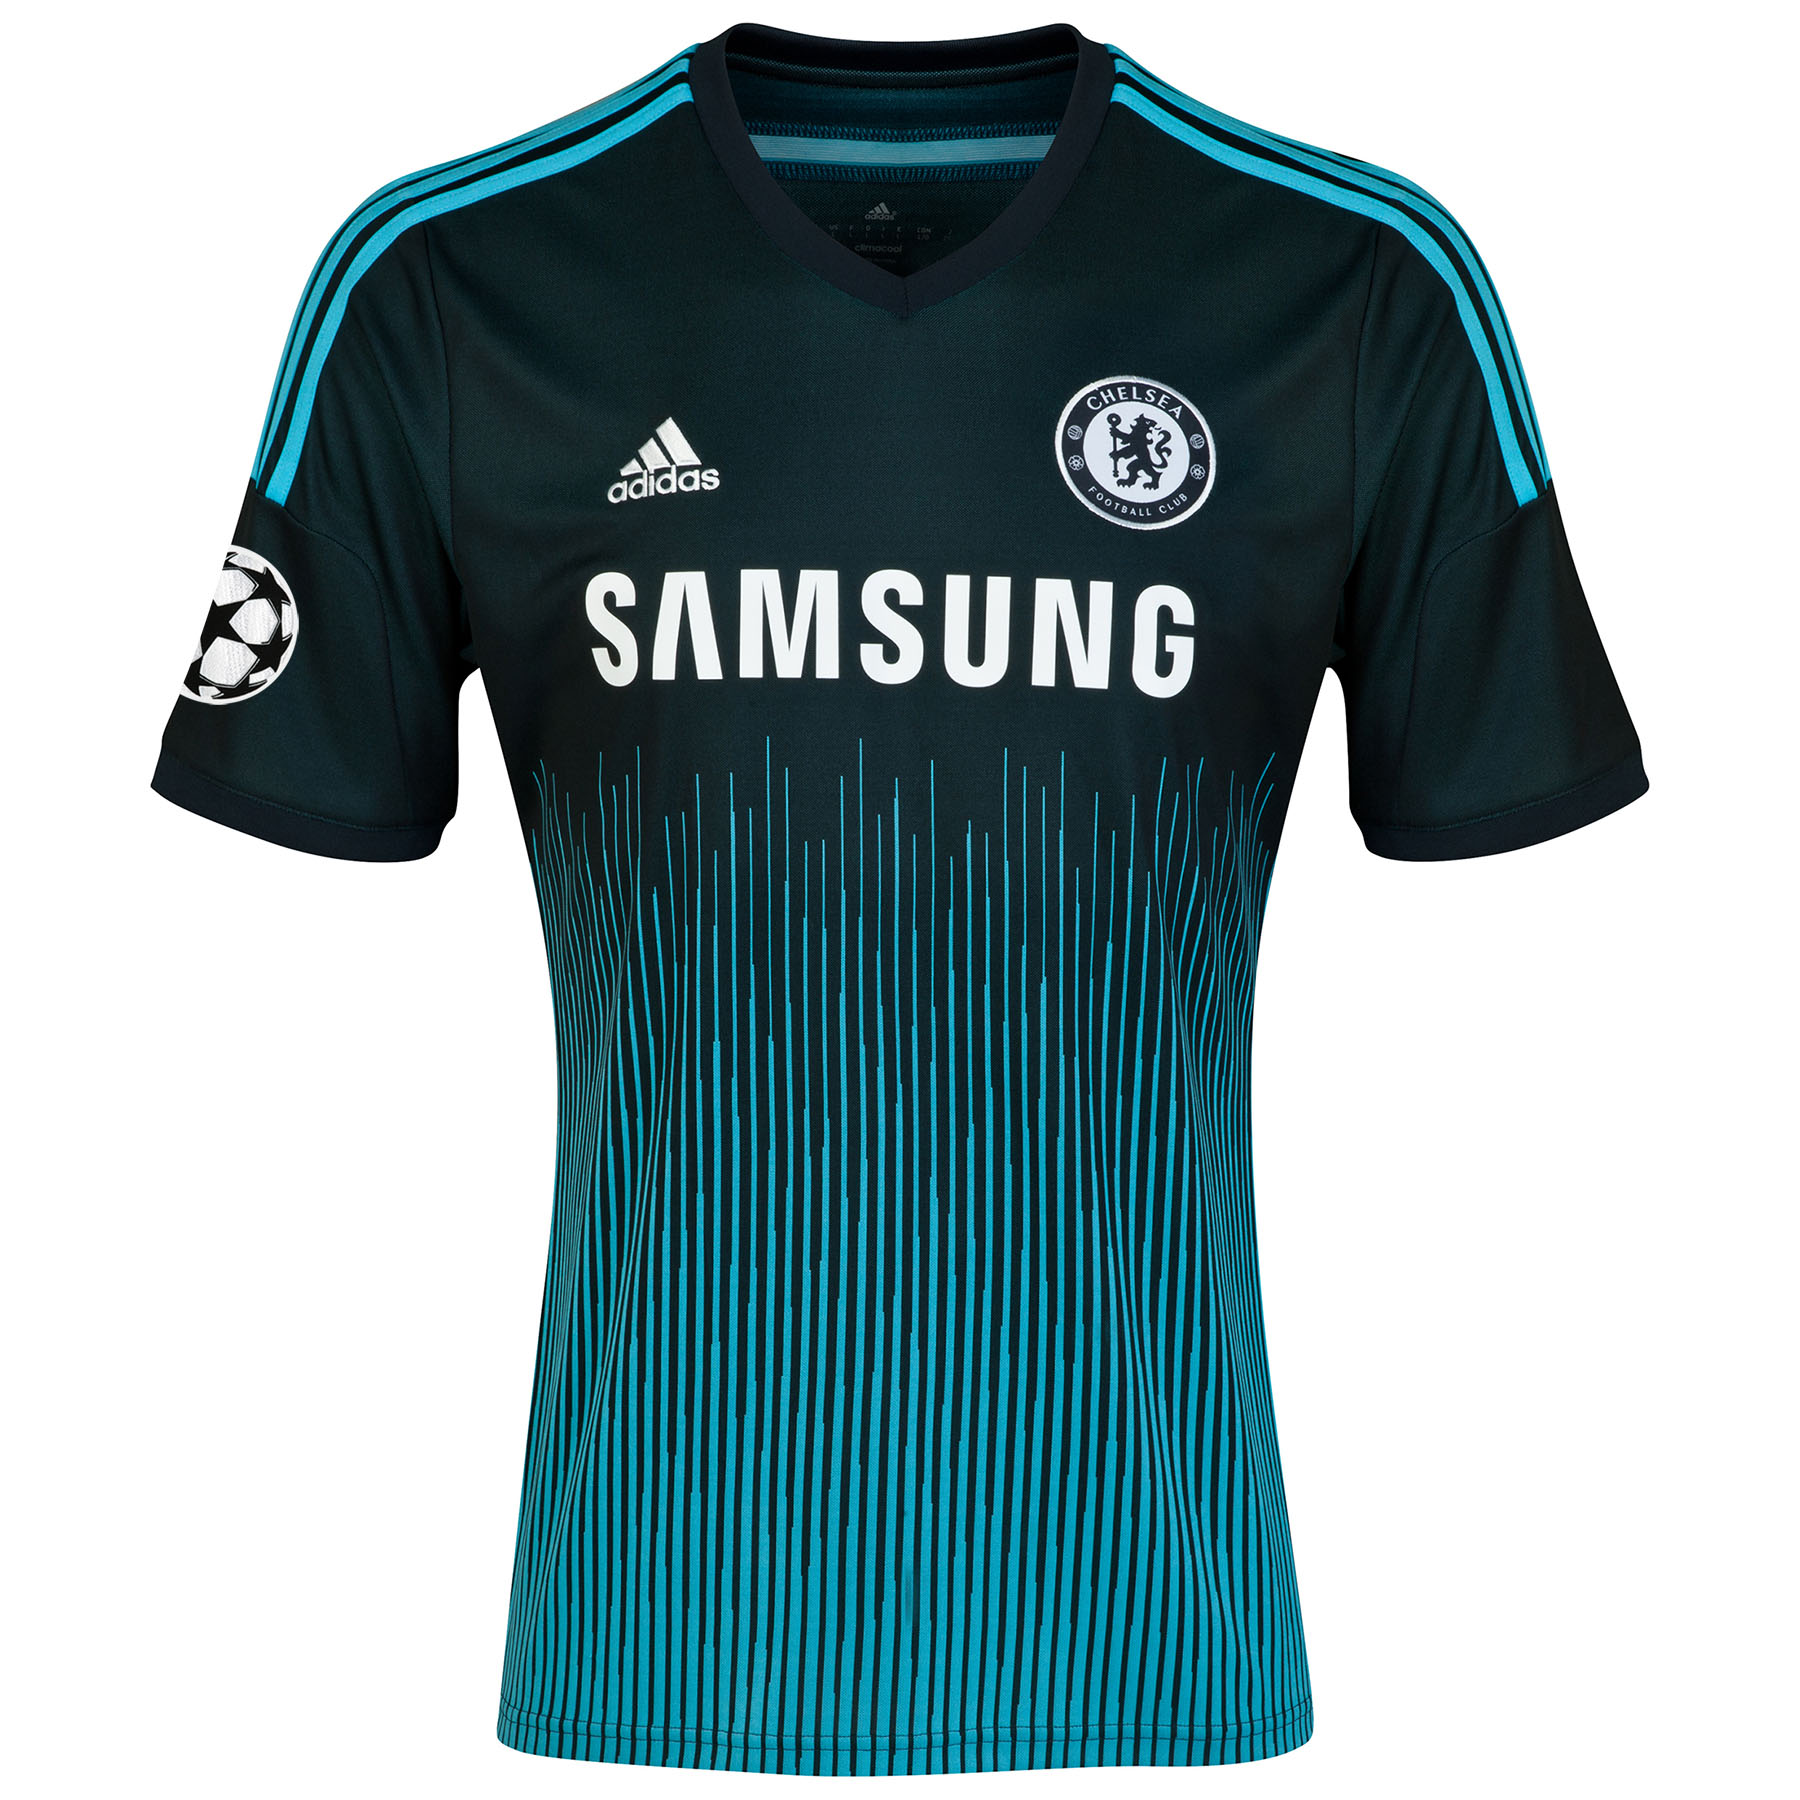 Chelsea UEFA Champions League Third Shirt 2014/15